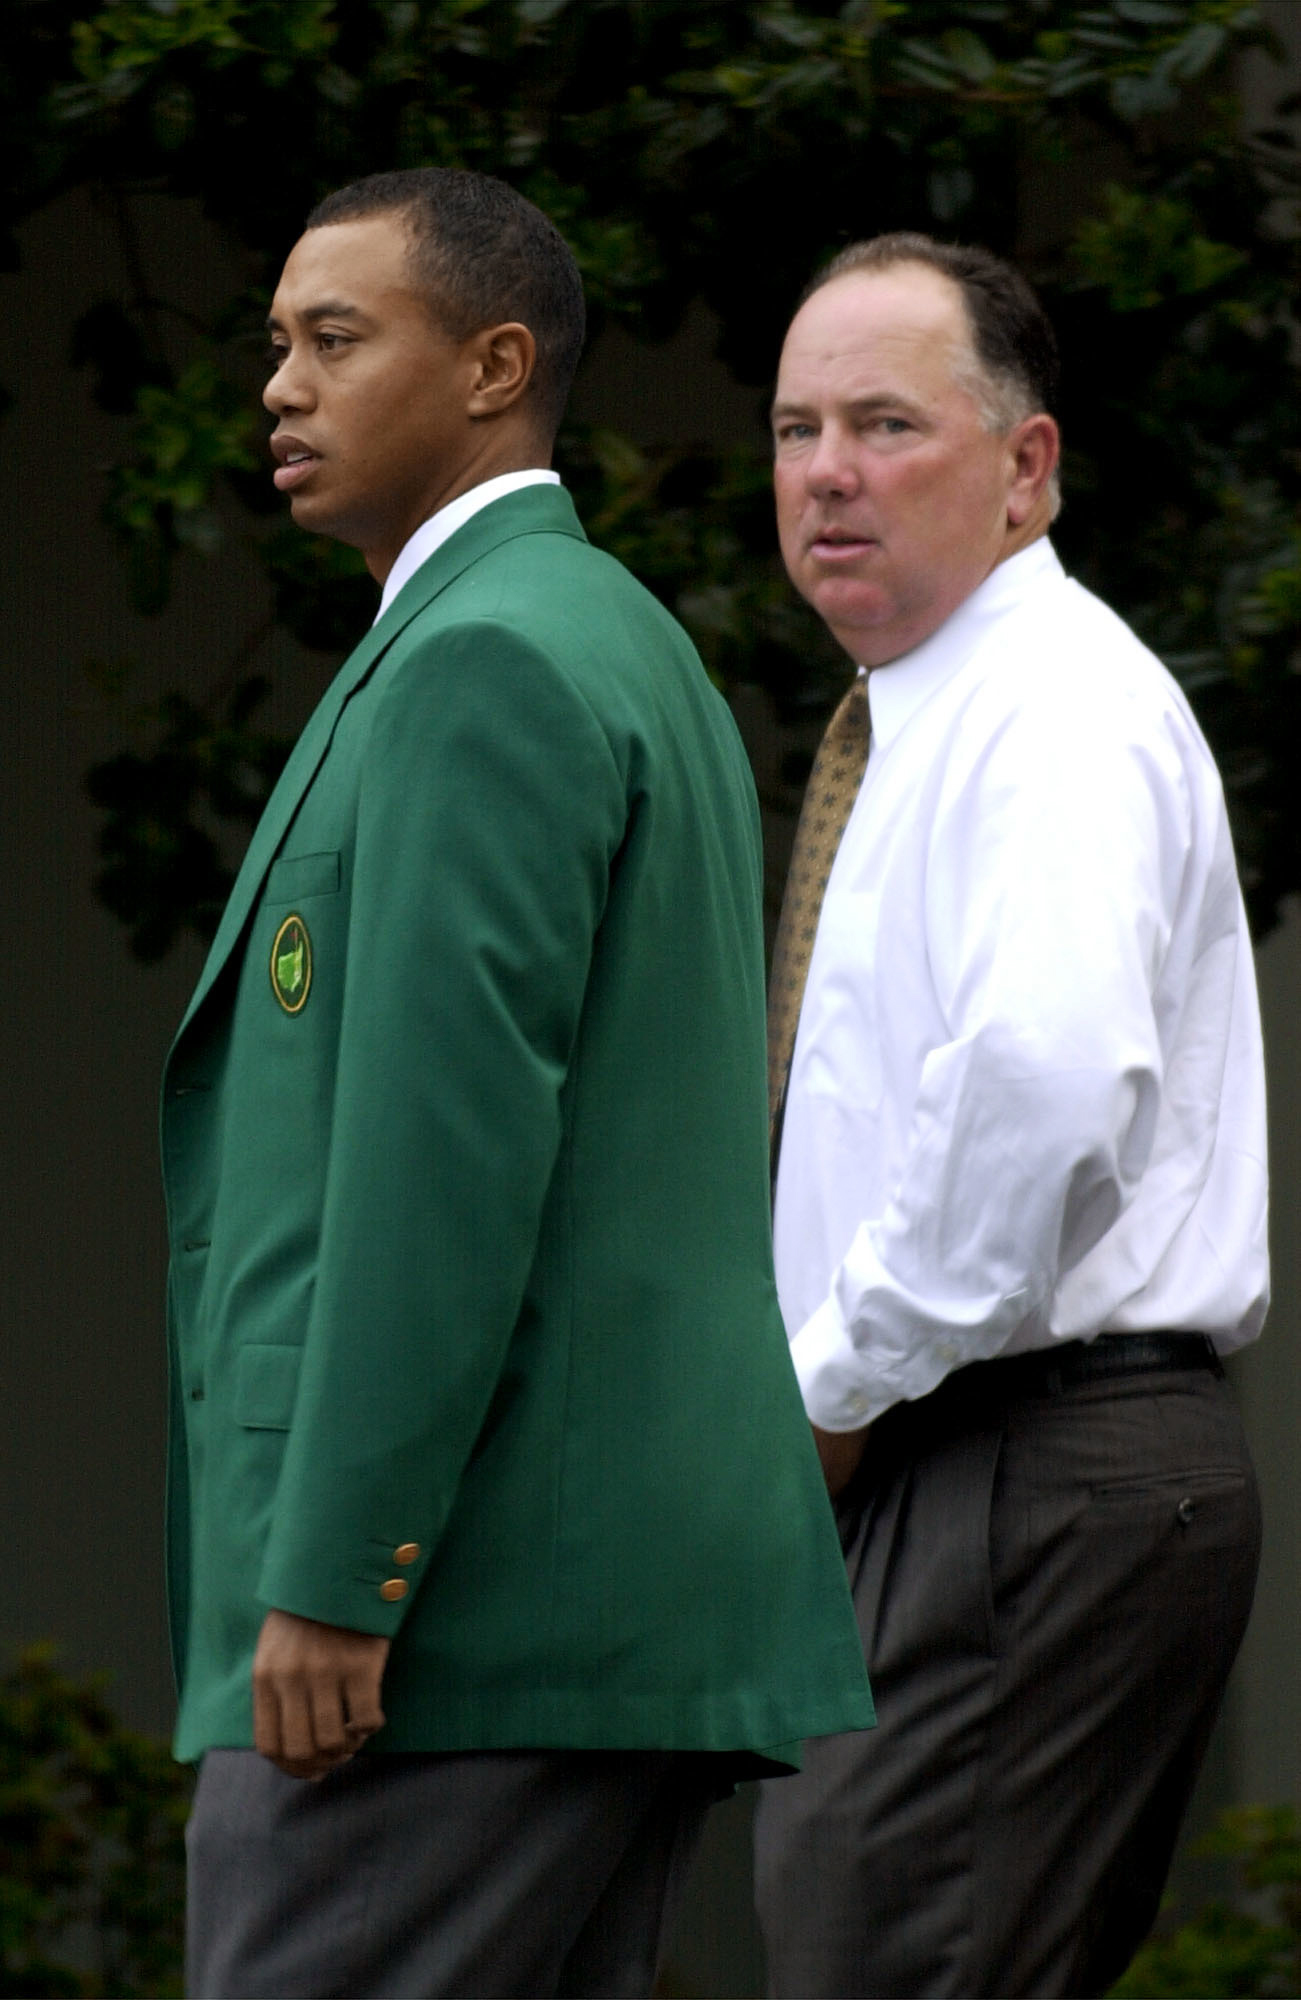 FILE - In this Tuesday, April 9, 2002, file photo, Defending Masters Champion Tiger Woods, left, and 1998 Masters Champion Mark O'Meara, right, arrive at the Augusta National Golf Club for the annual Champions dinner at the 2002 Masters, in Augusta, Ga. O